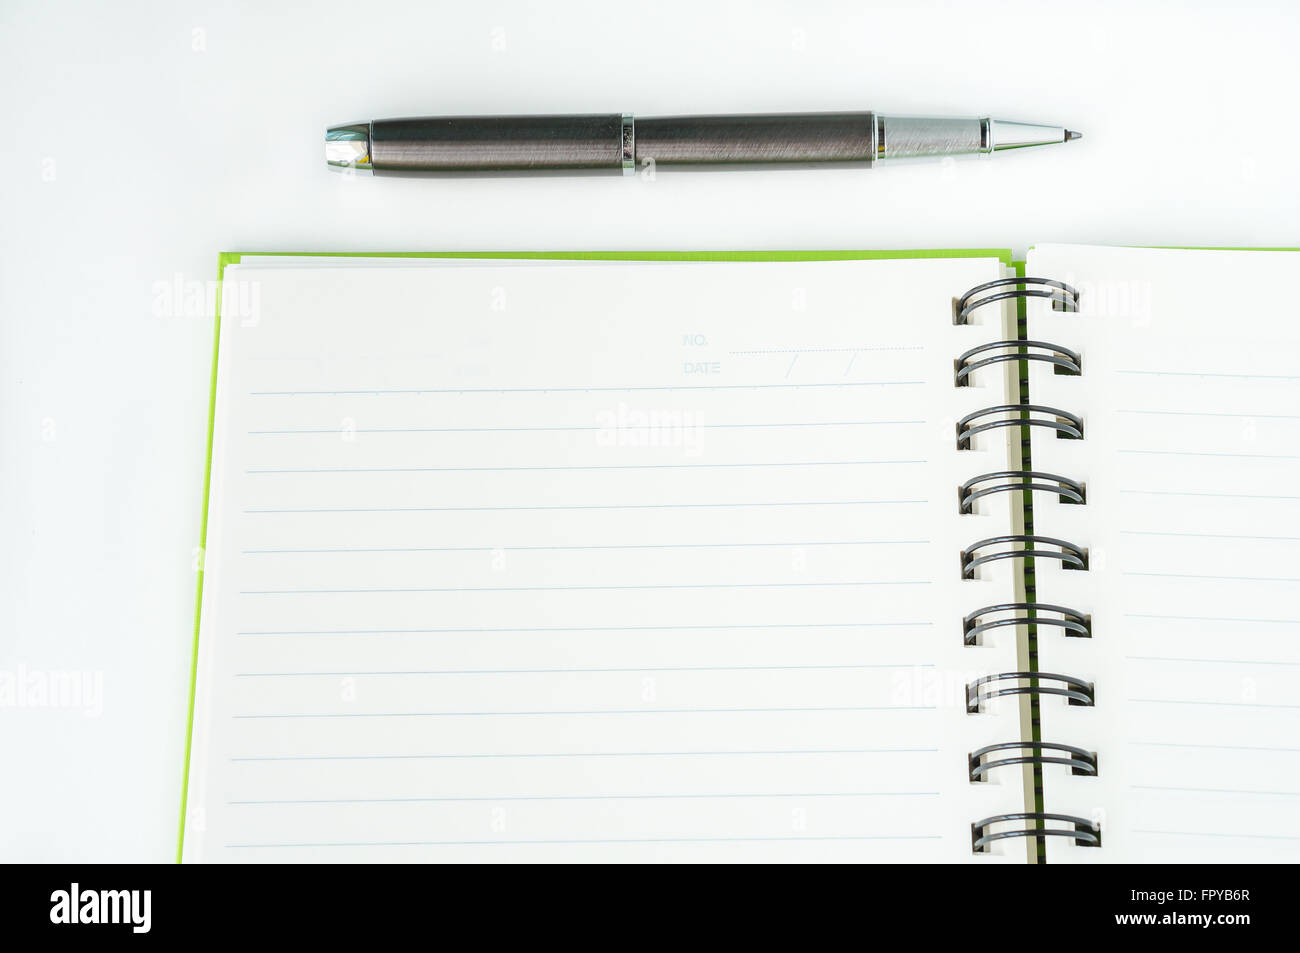 Ball Pen Stock Photos Images Alamy Ballpoint Diagram And Notepad Royalty Free Open Notebook With Metallic Top View Image